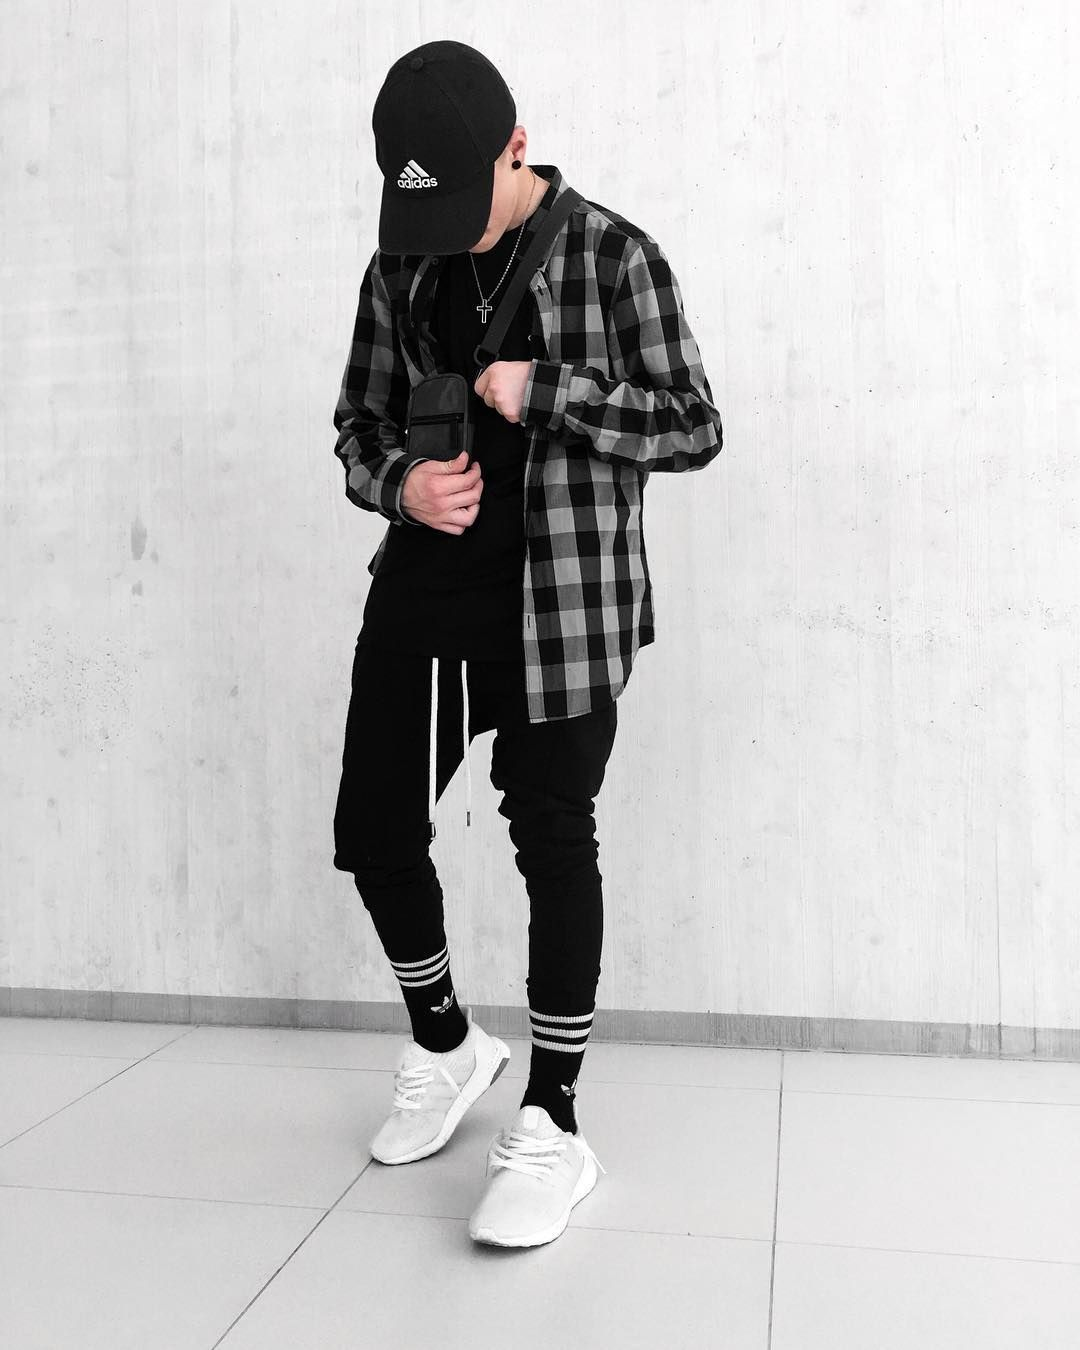 Pin by Ricky Munoz on Men s Fashion in 2019  44fc9bcd98a4